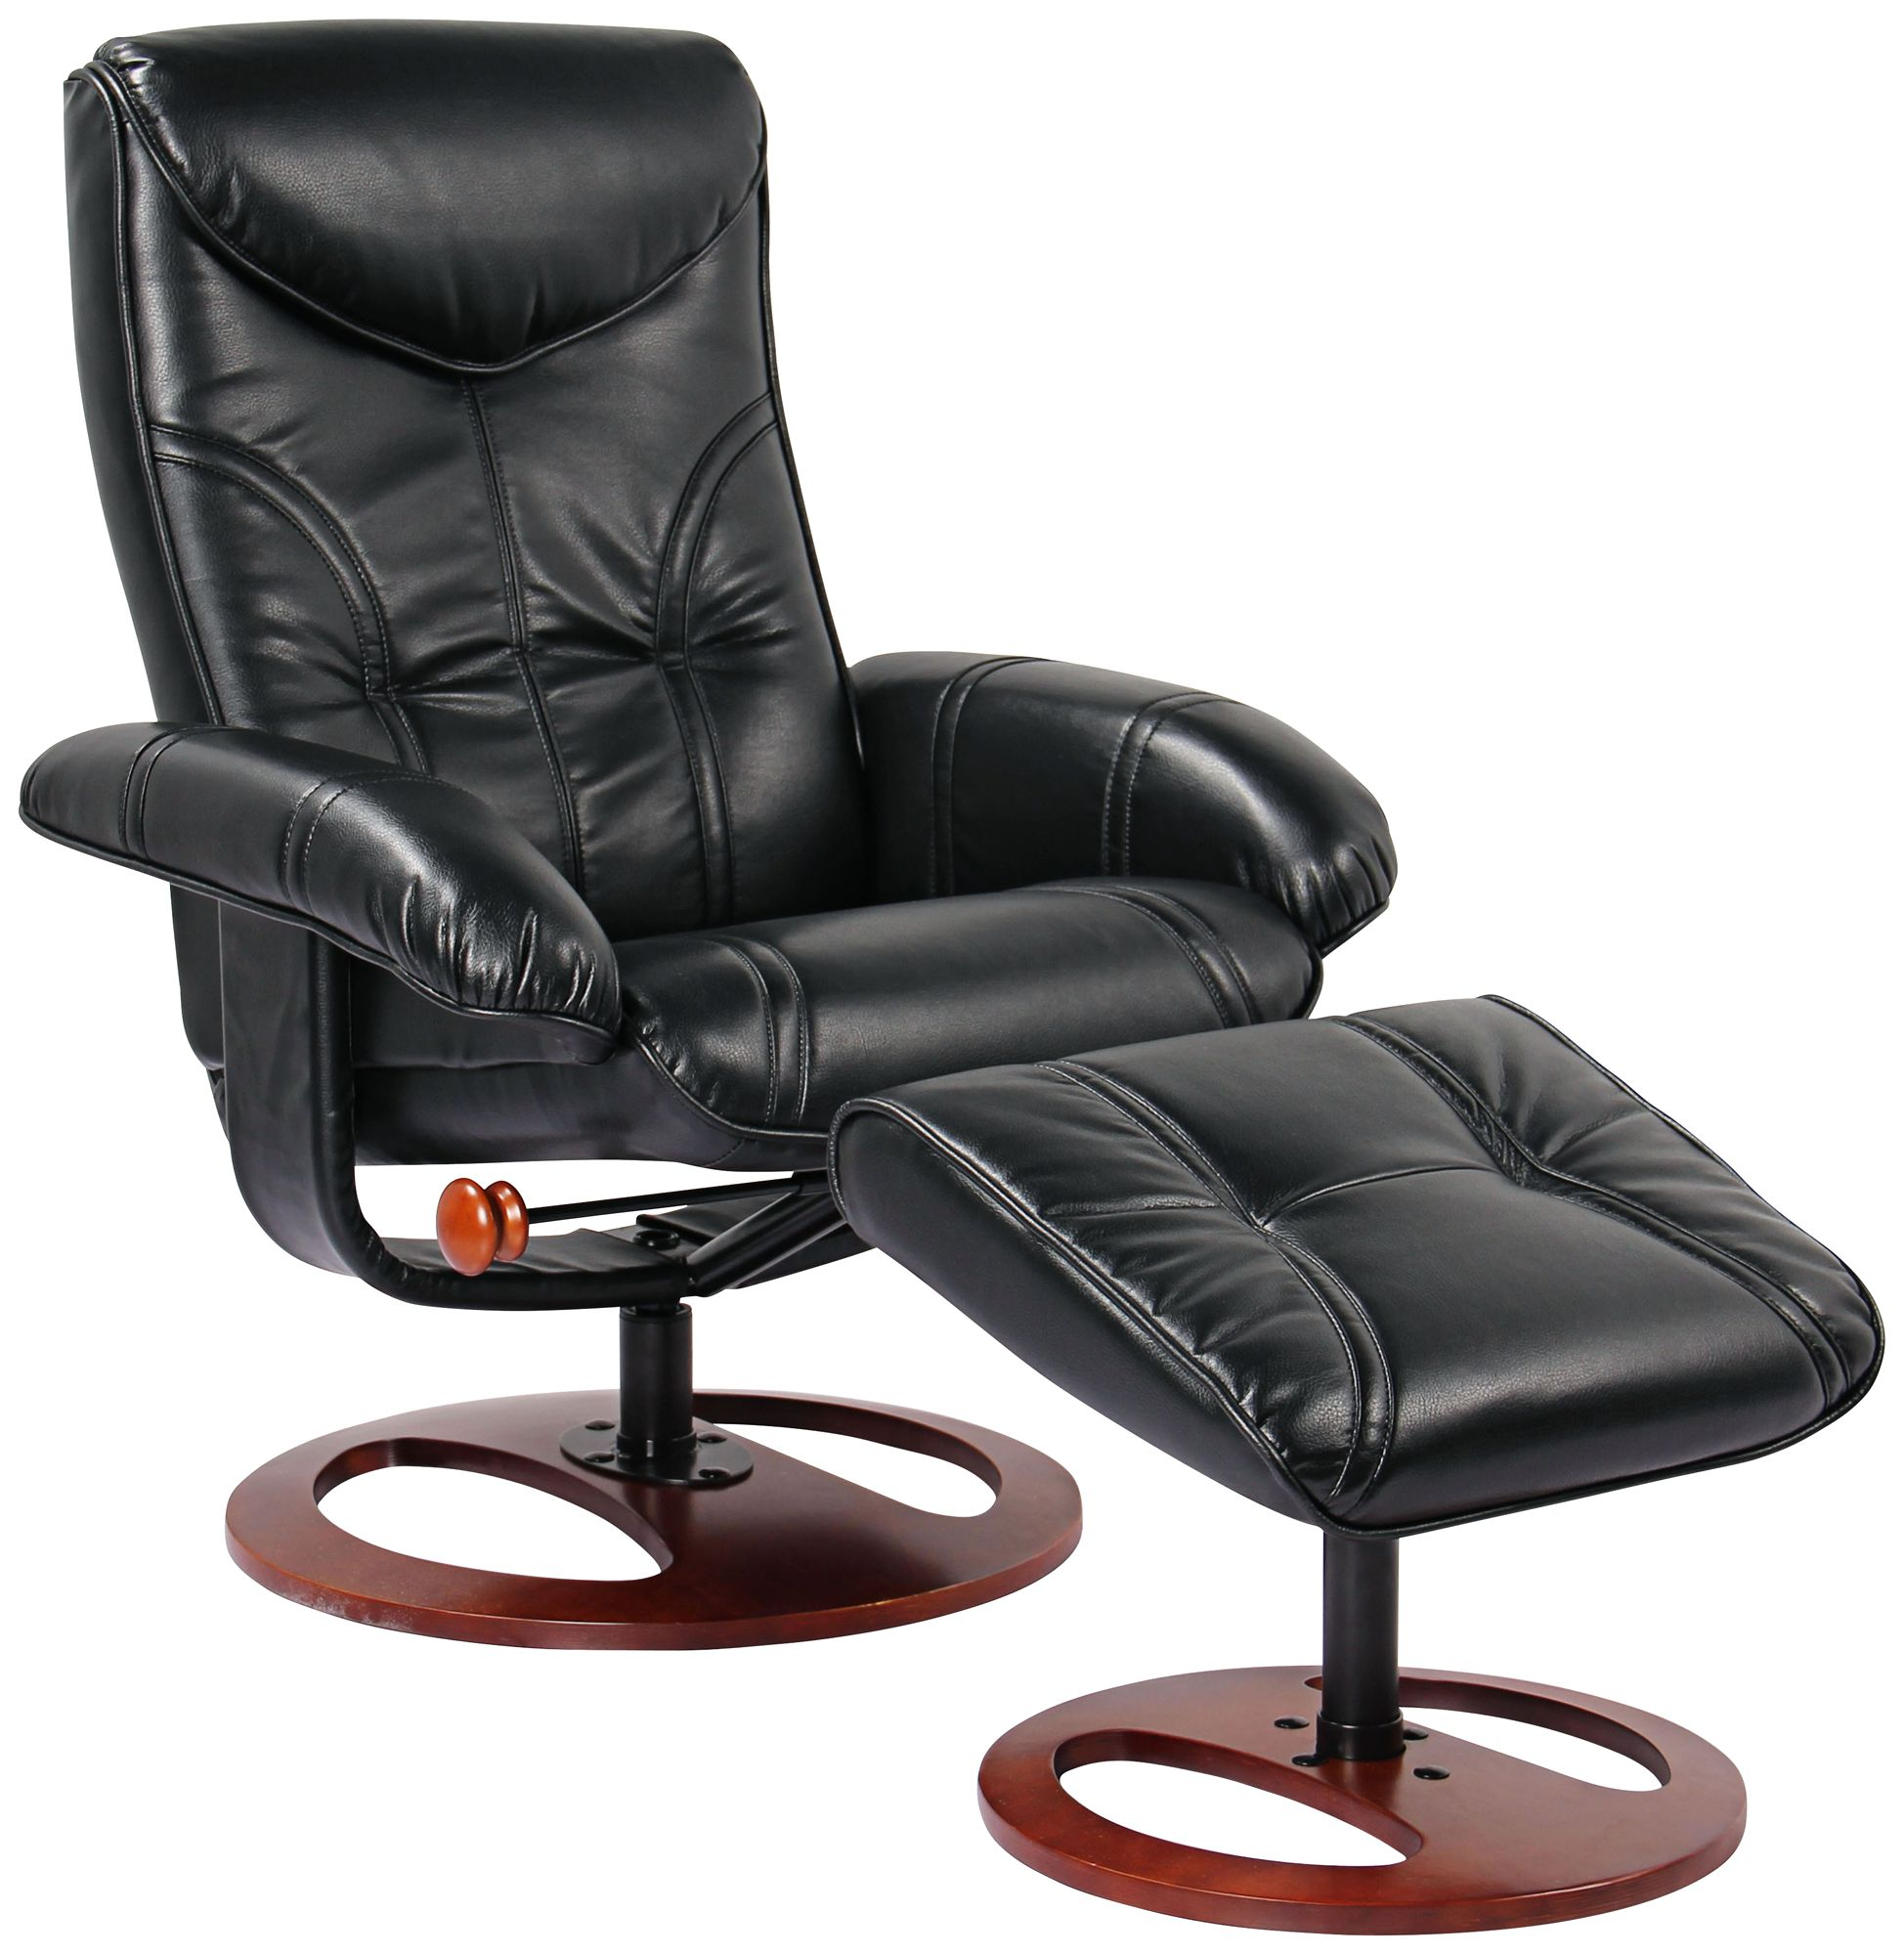 Newport Walnut Swivel Recliner And Slanted Ottoman In Black